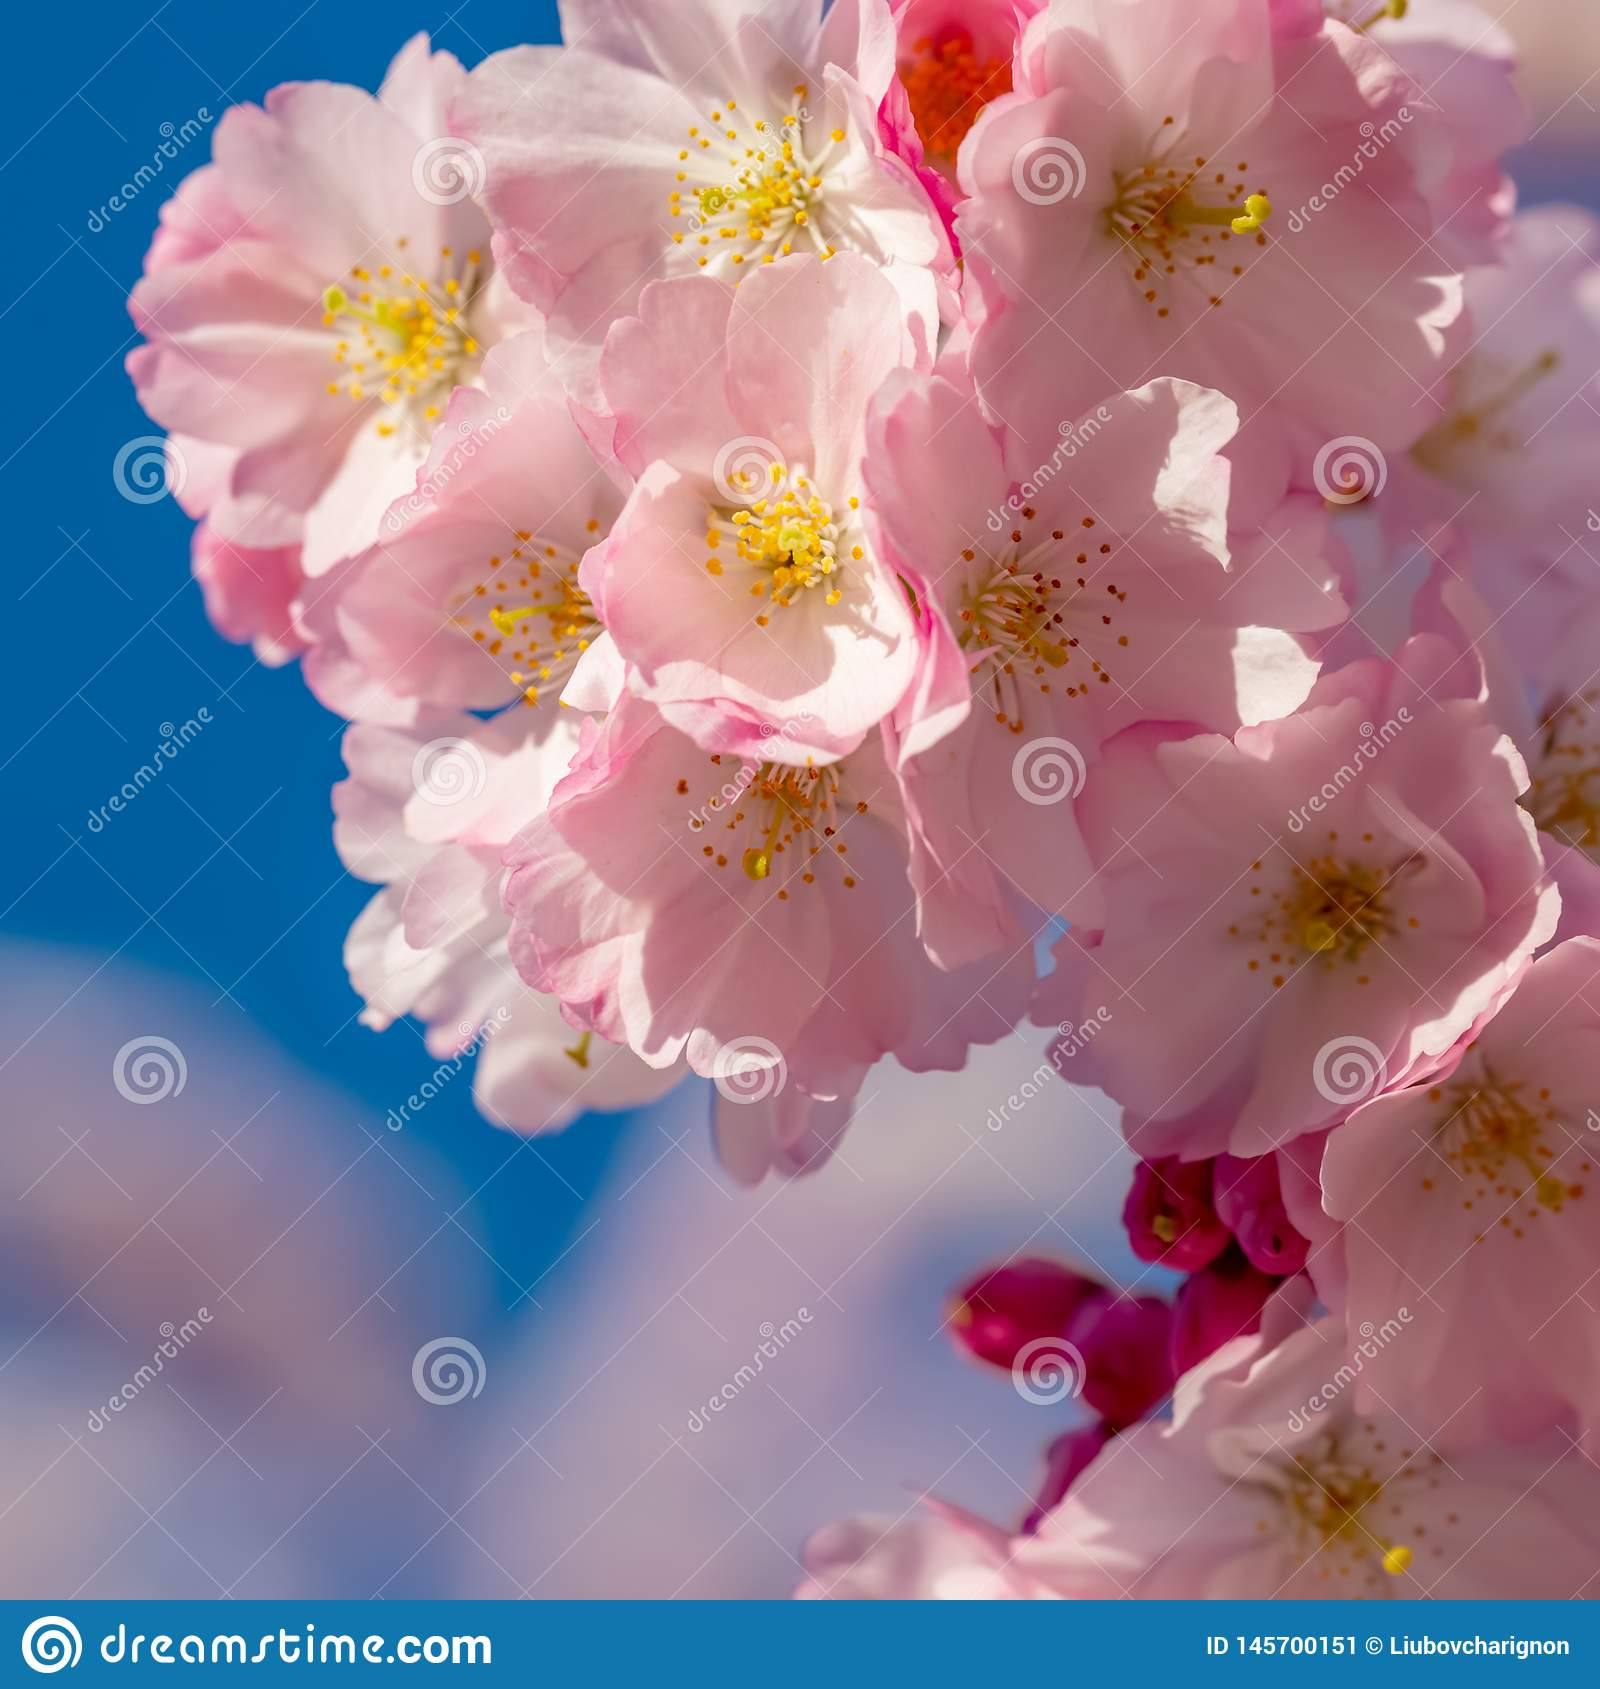 A branch of cherry blossoms. Blooming cherry